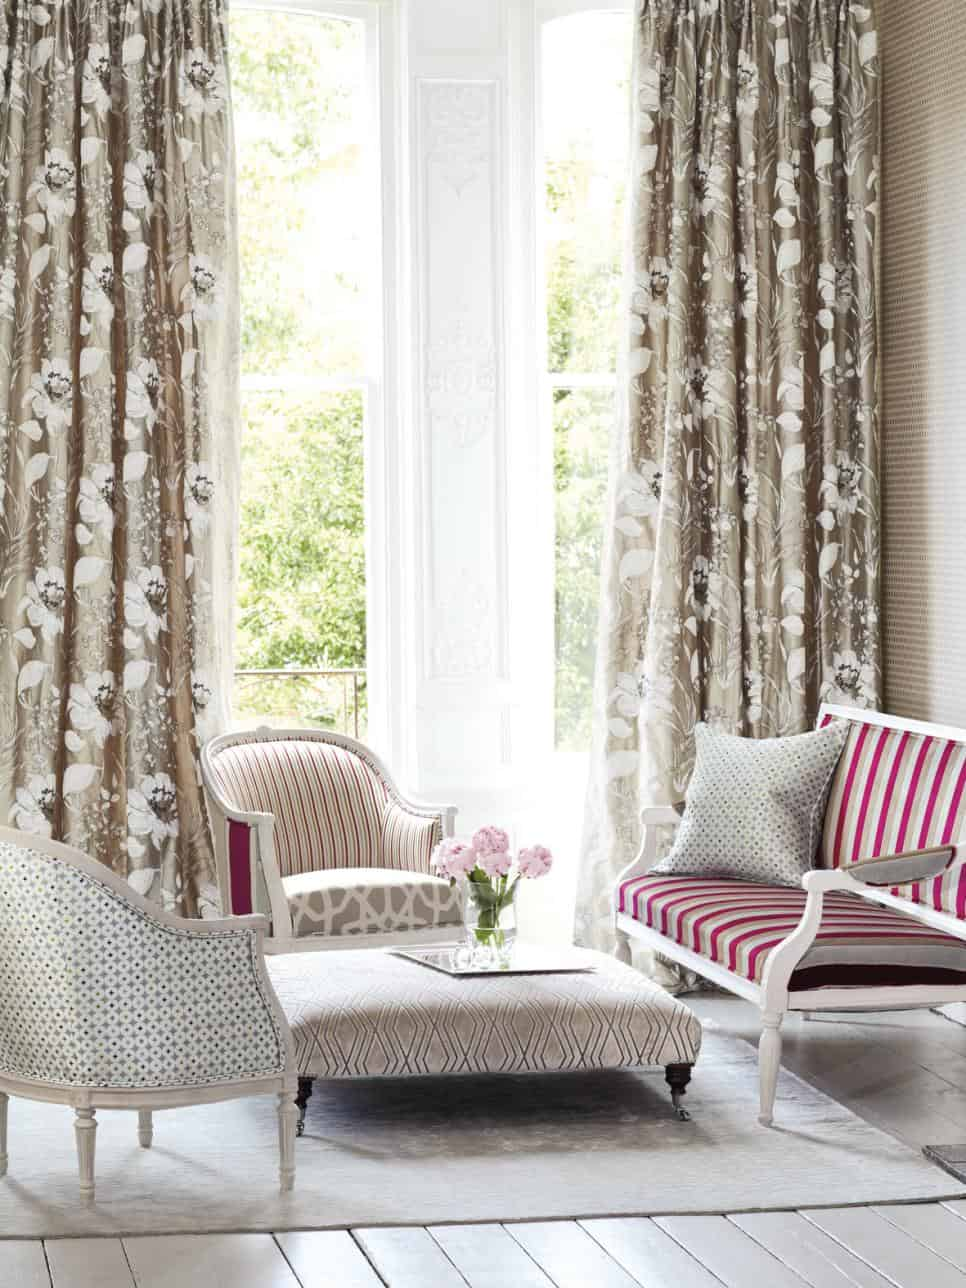 Trendy Ideas for Small Living Room Space on Living Room Drapes Ideas  id=37191